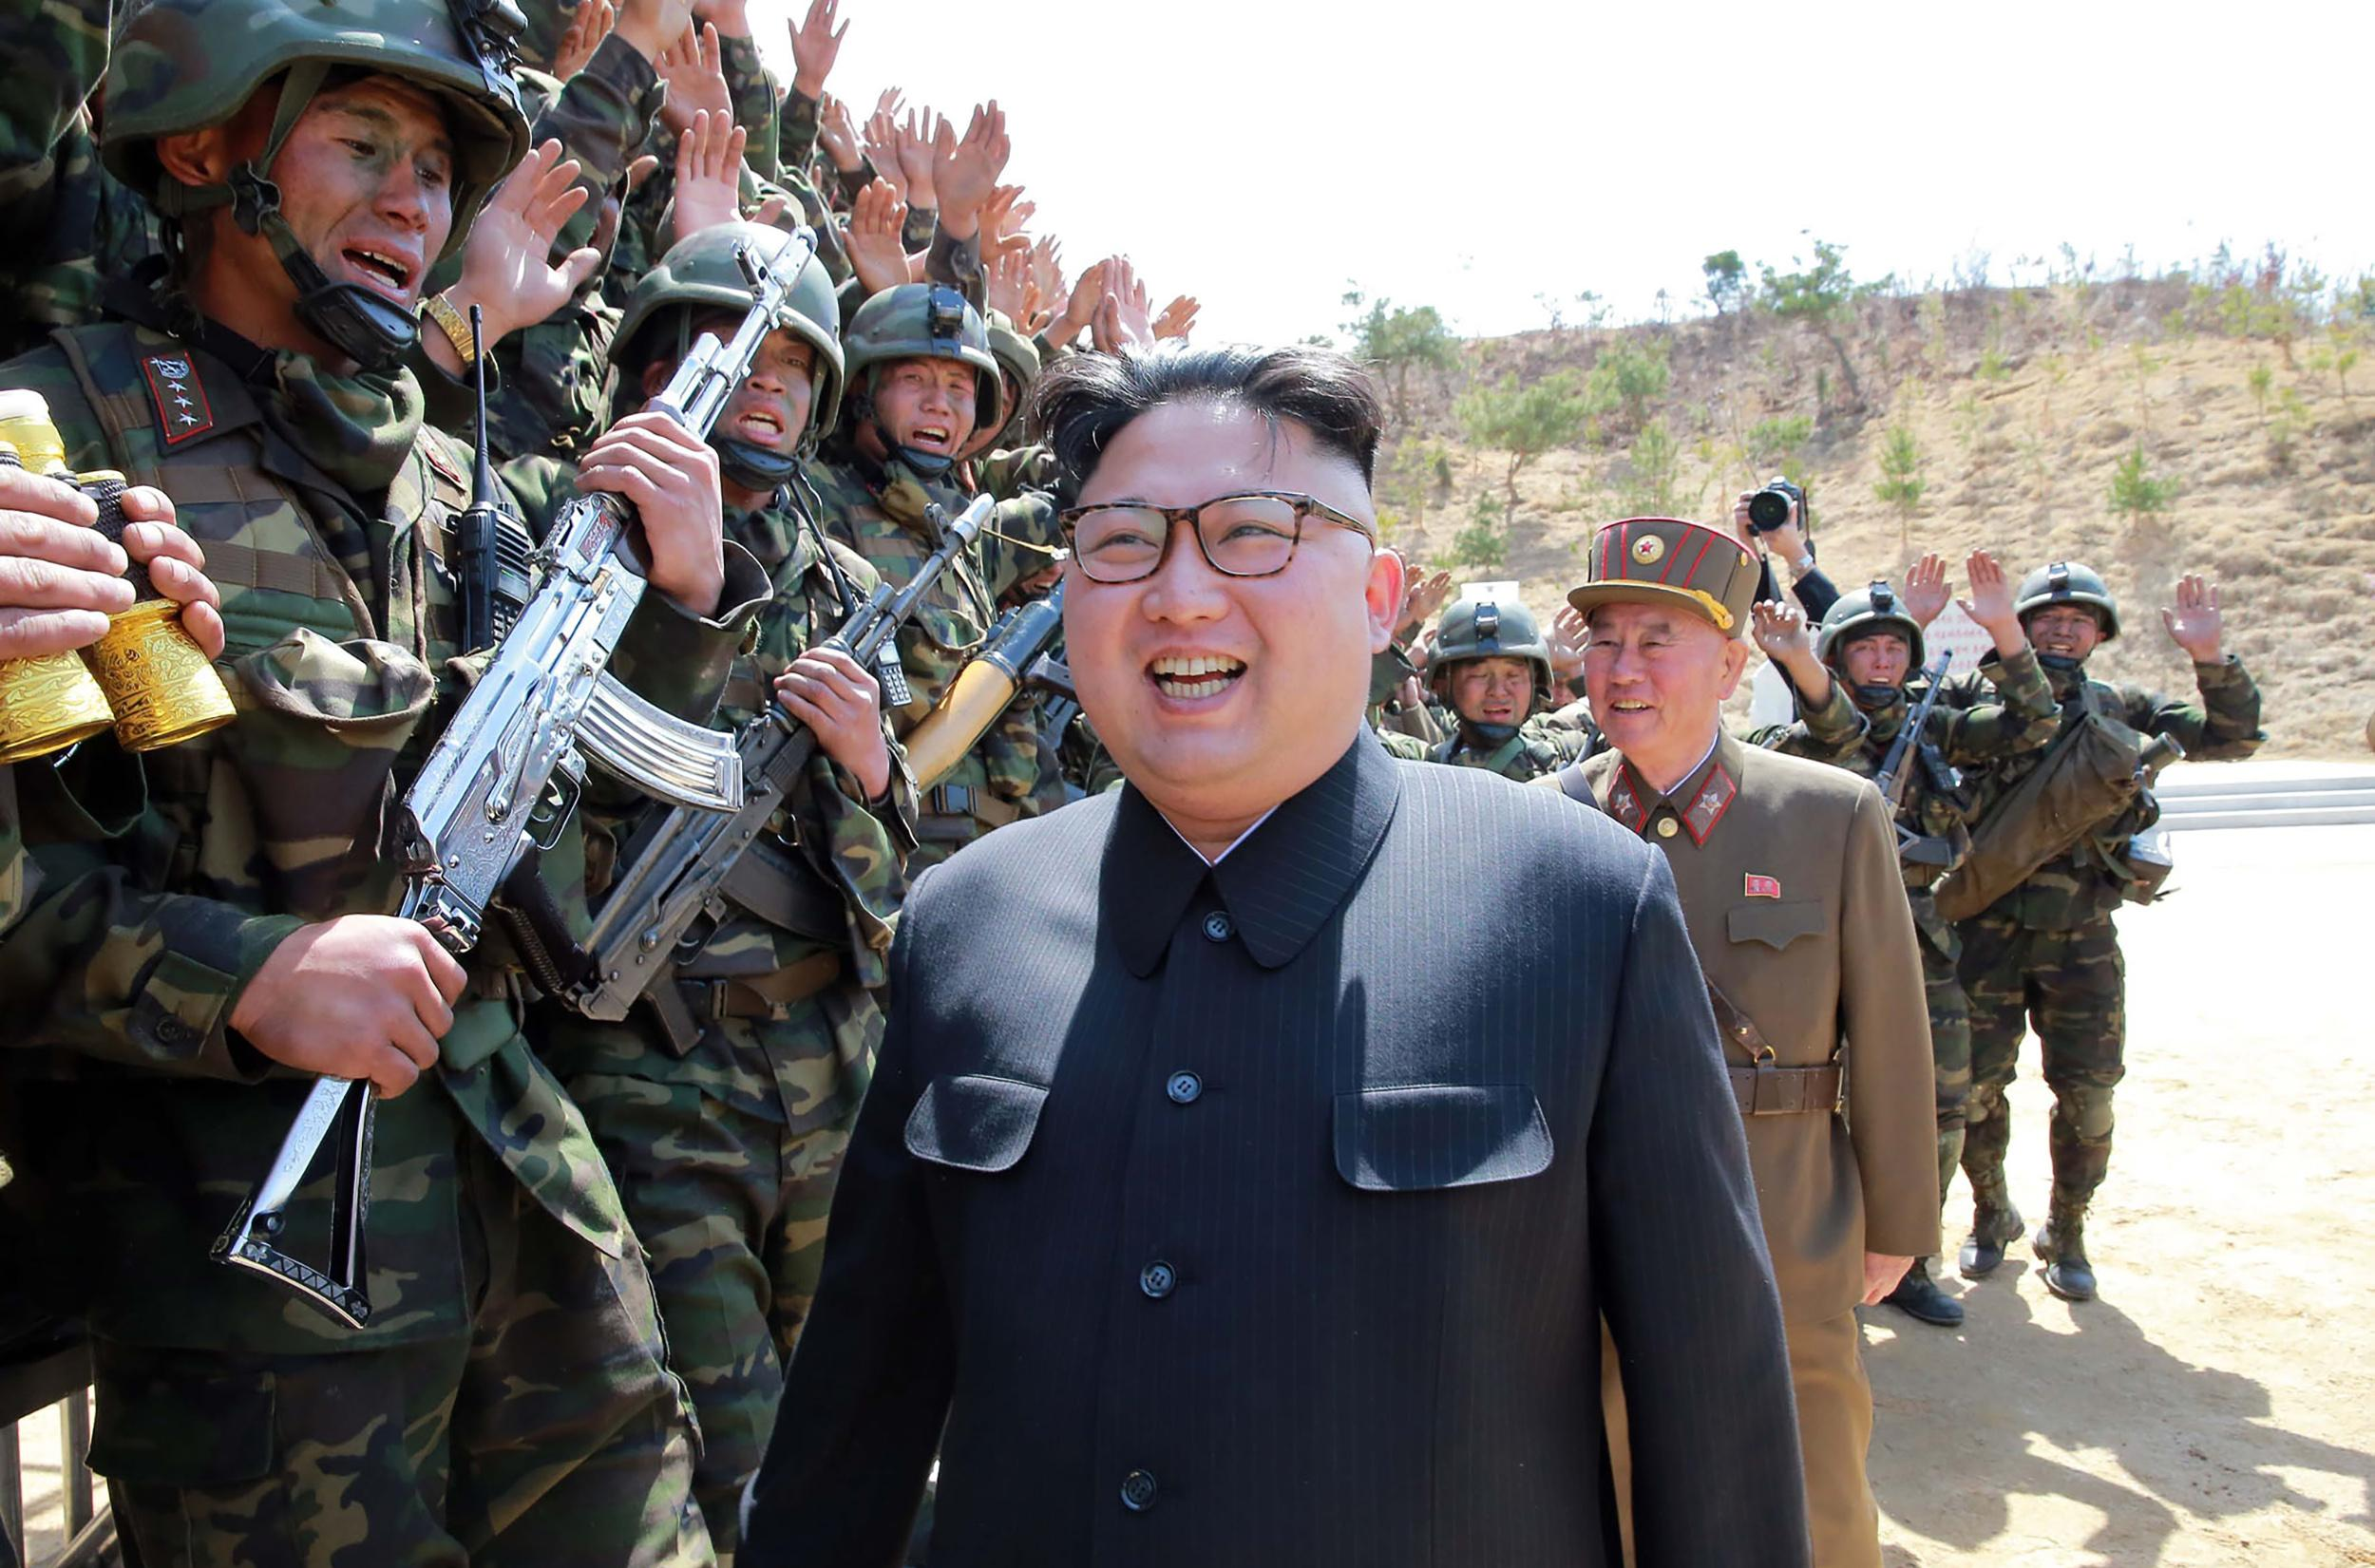 Kim Jong-un Reportedly Urges Ruling Party to Resist 'Non-Socialist' Practices